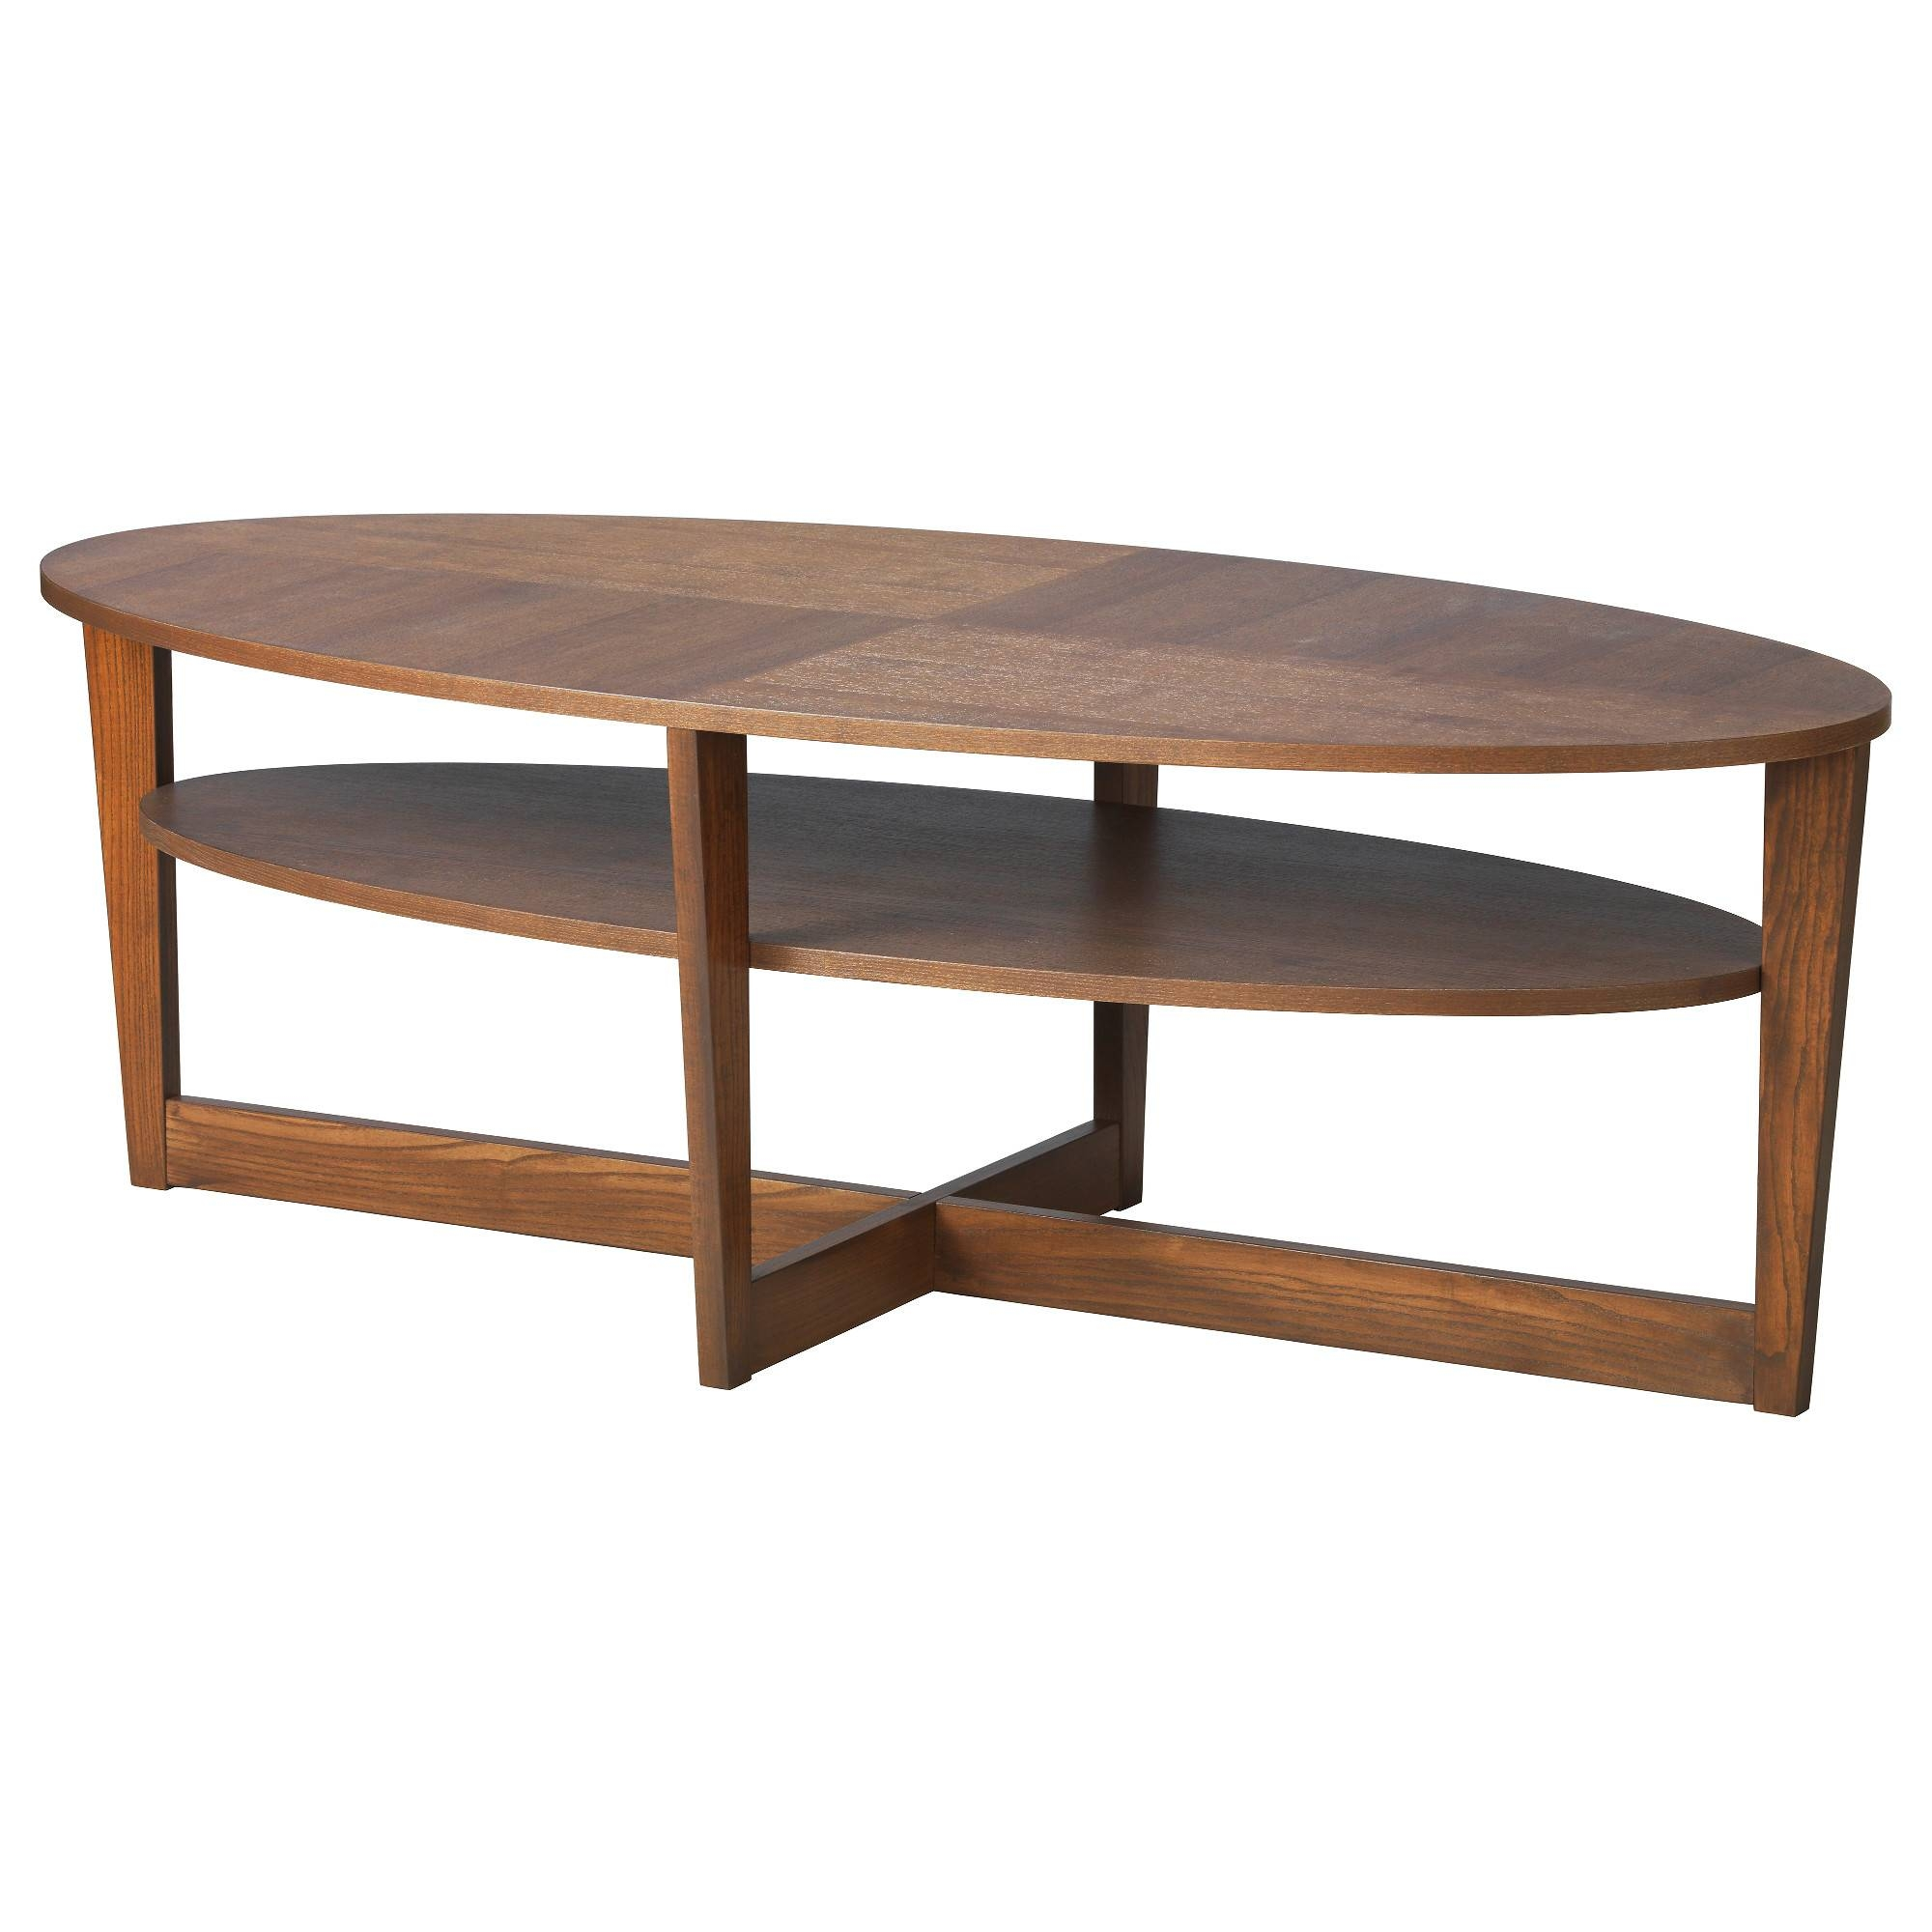 Decor Of Narrow Coffee Table With Narrow Coffee Table Etsy for Narrow Coffee Tables (Image 7 of 30)